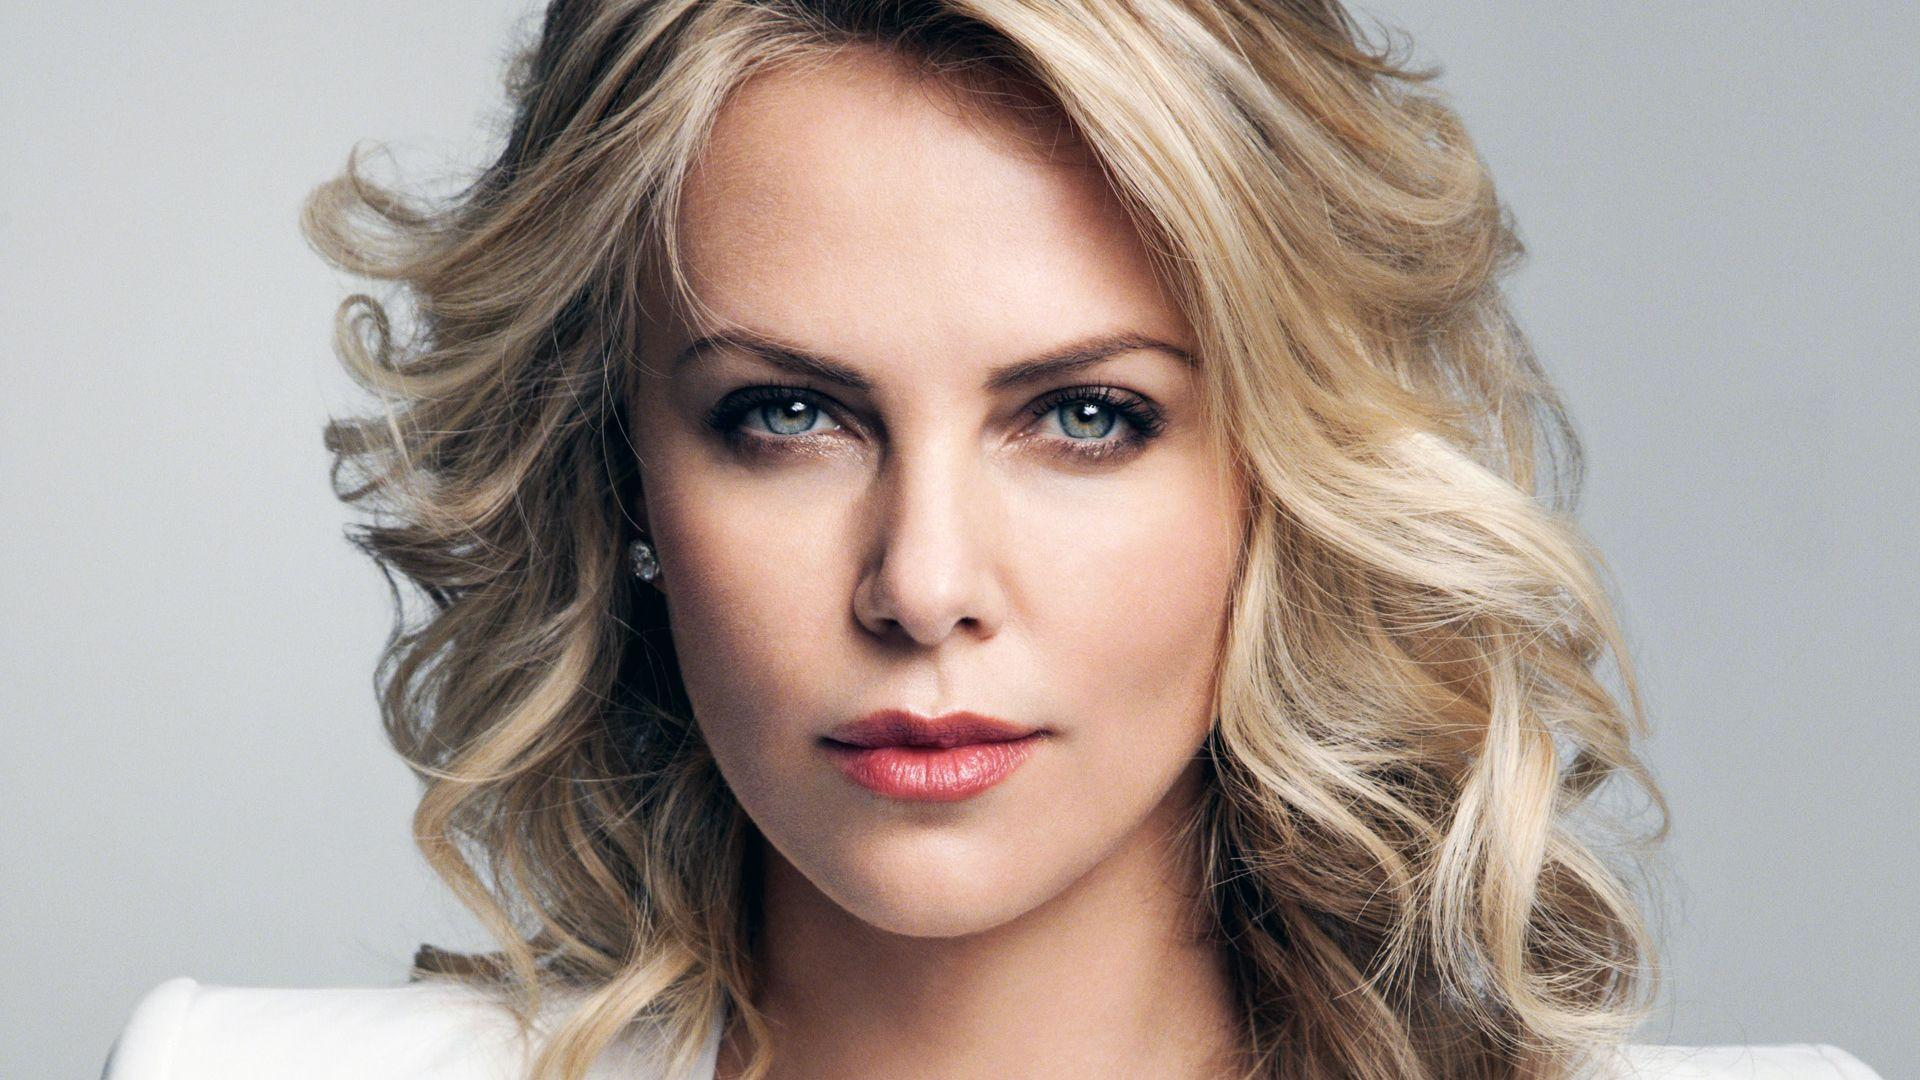 Charlize Theron Wallpapers - CelebrityWallpapersHQ.Com